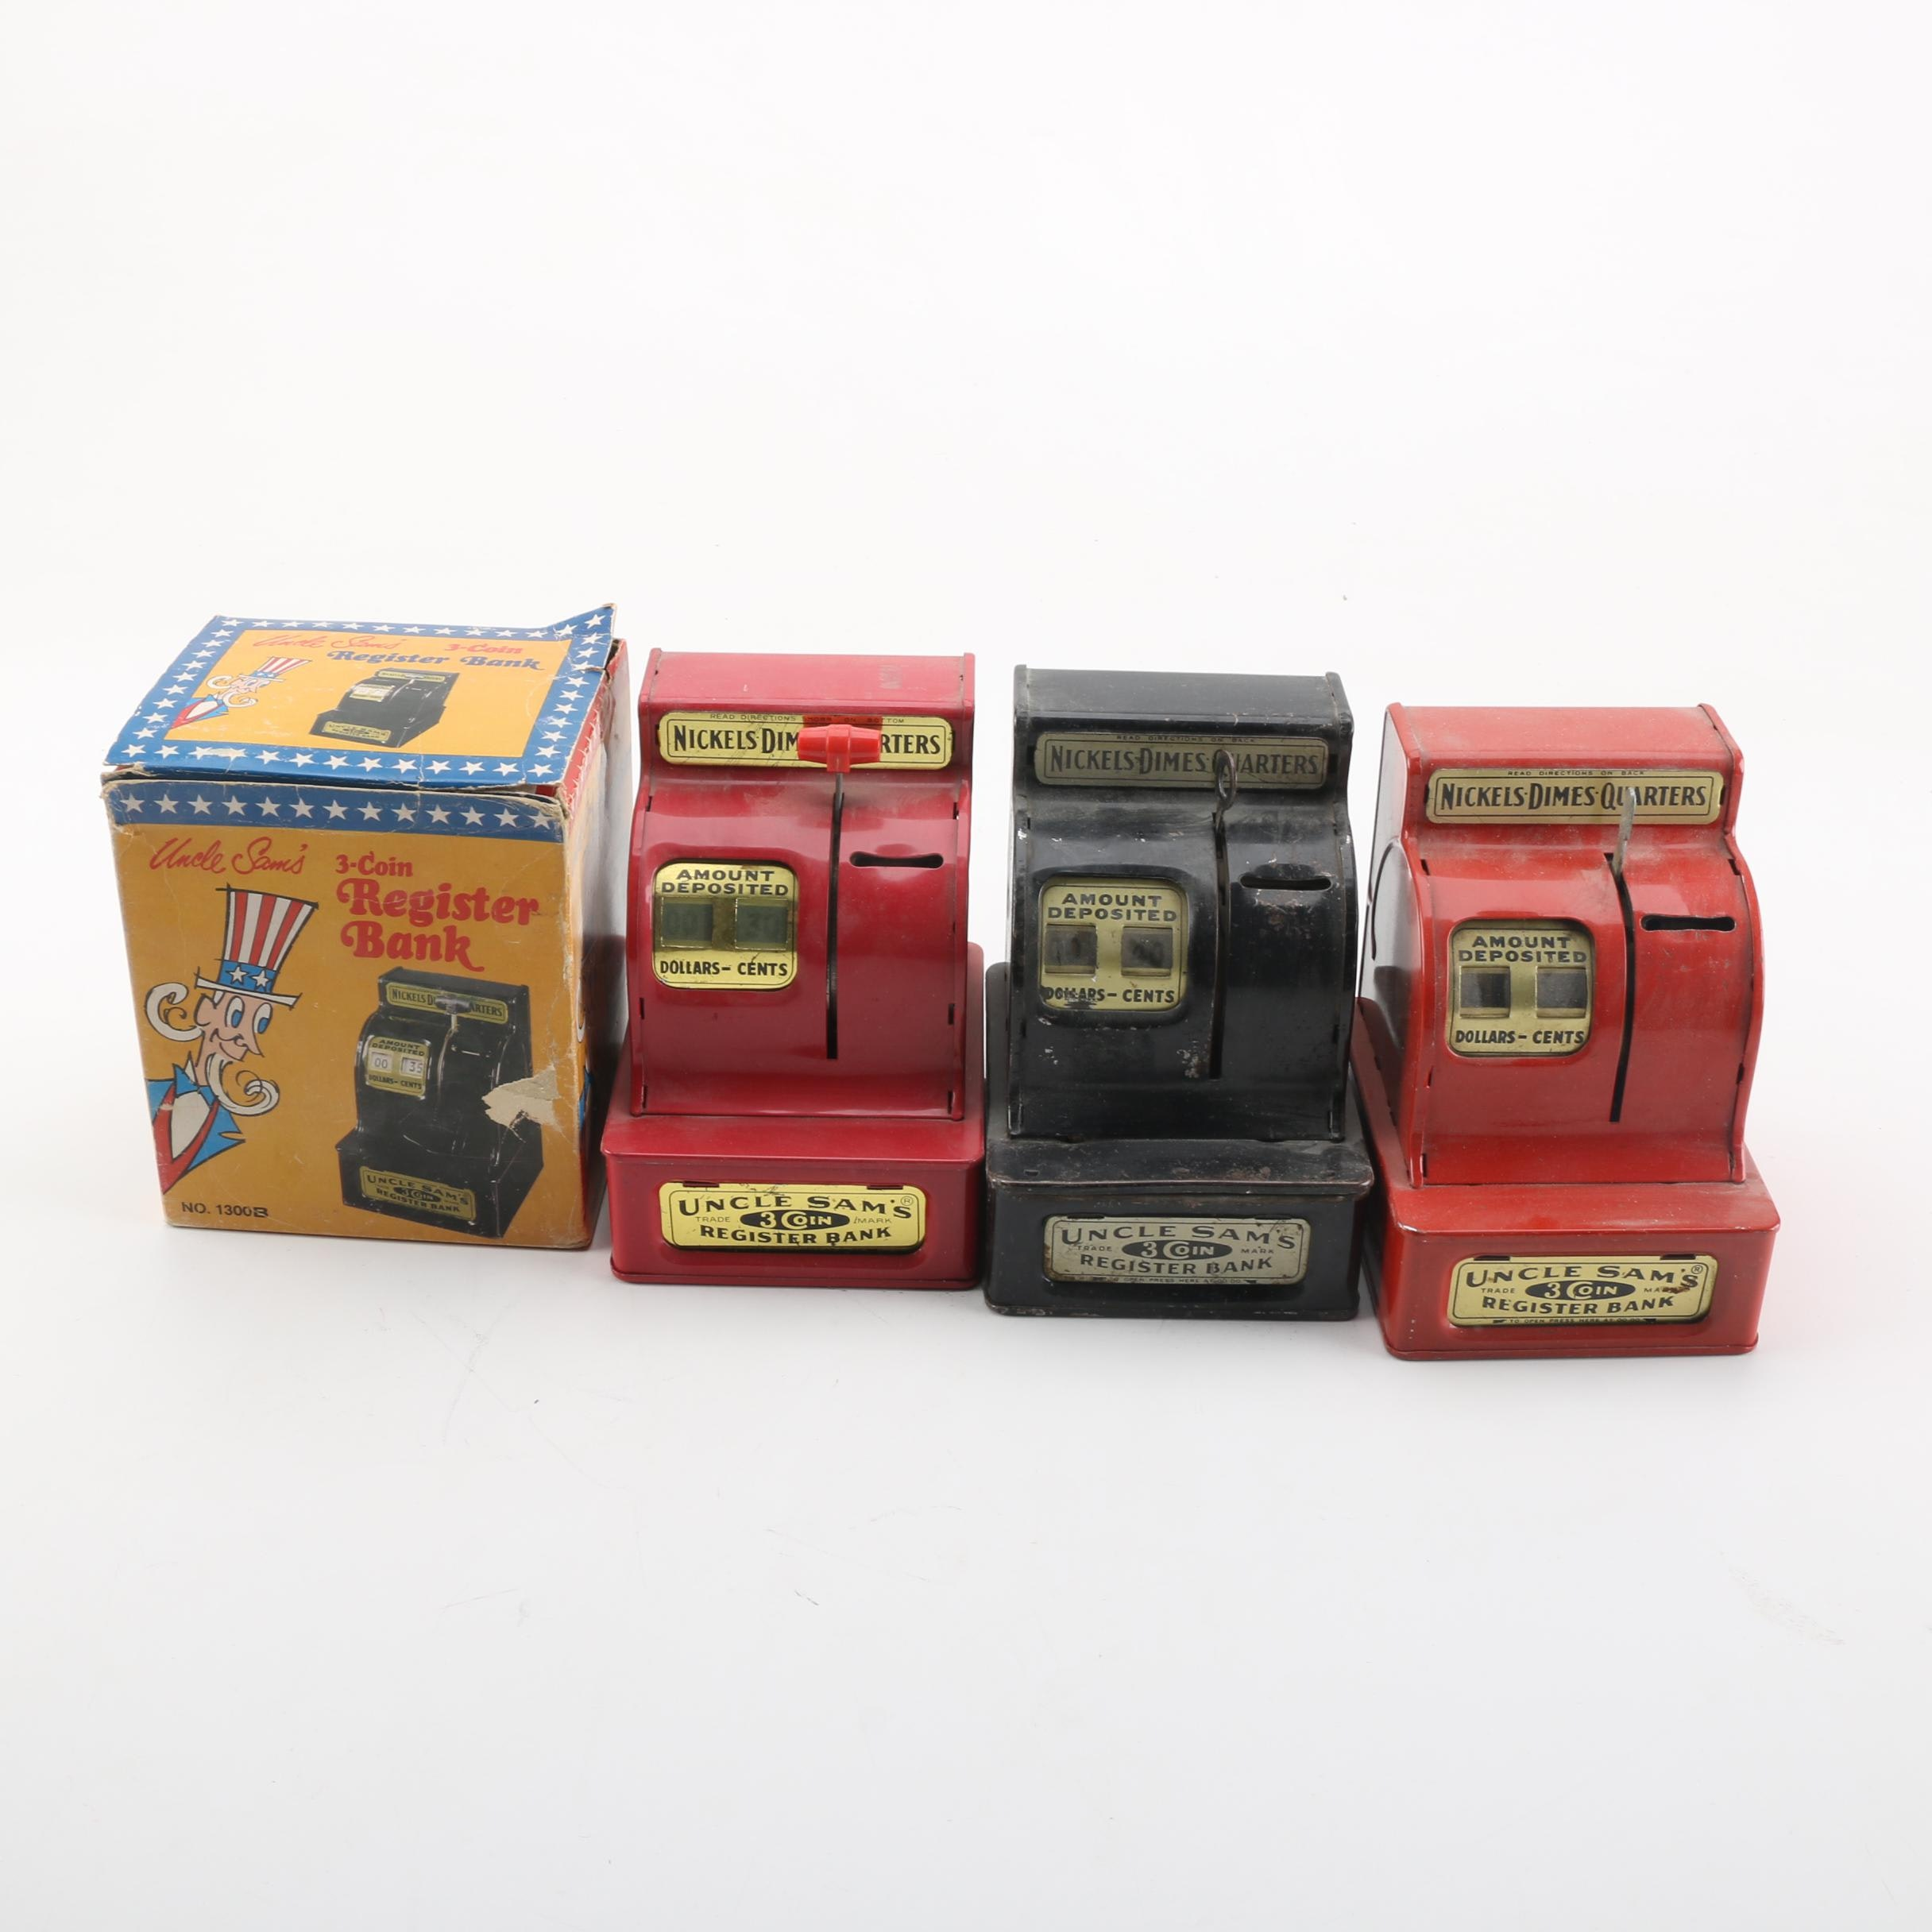 Collection of Uncle Sam's 3-Coin Register Banks